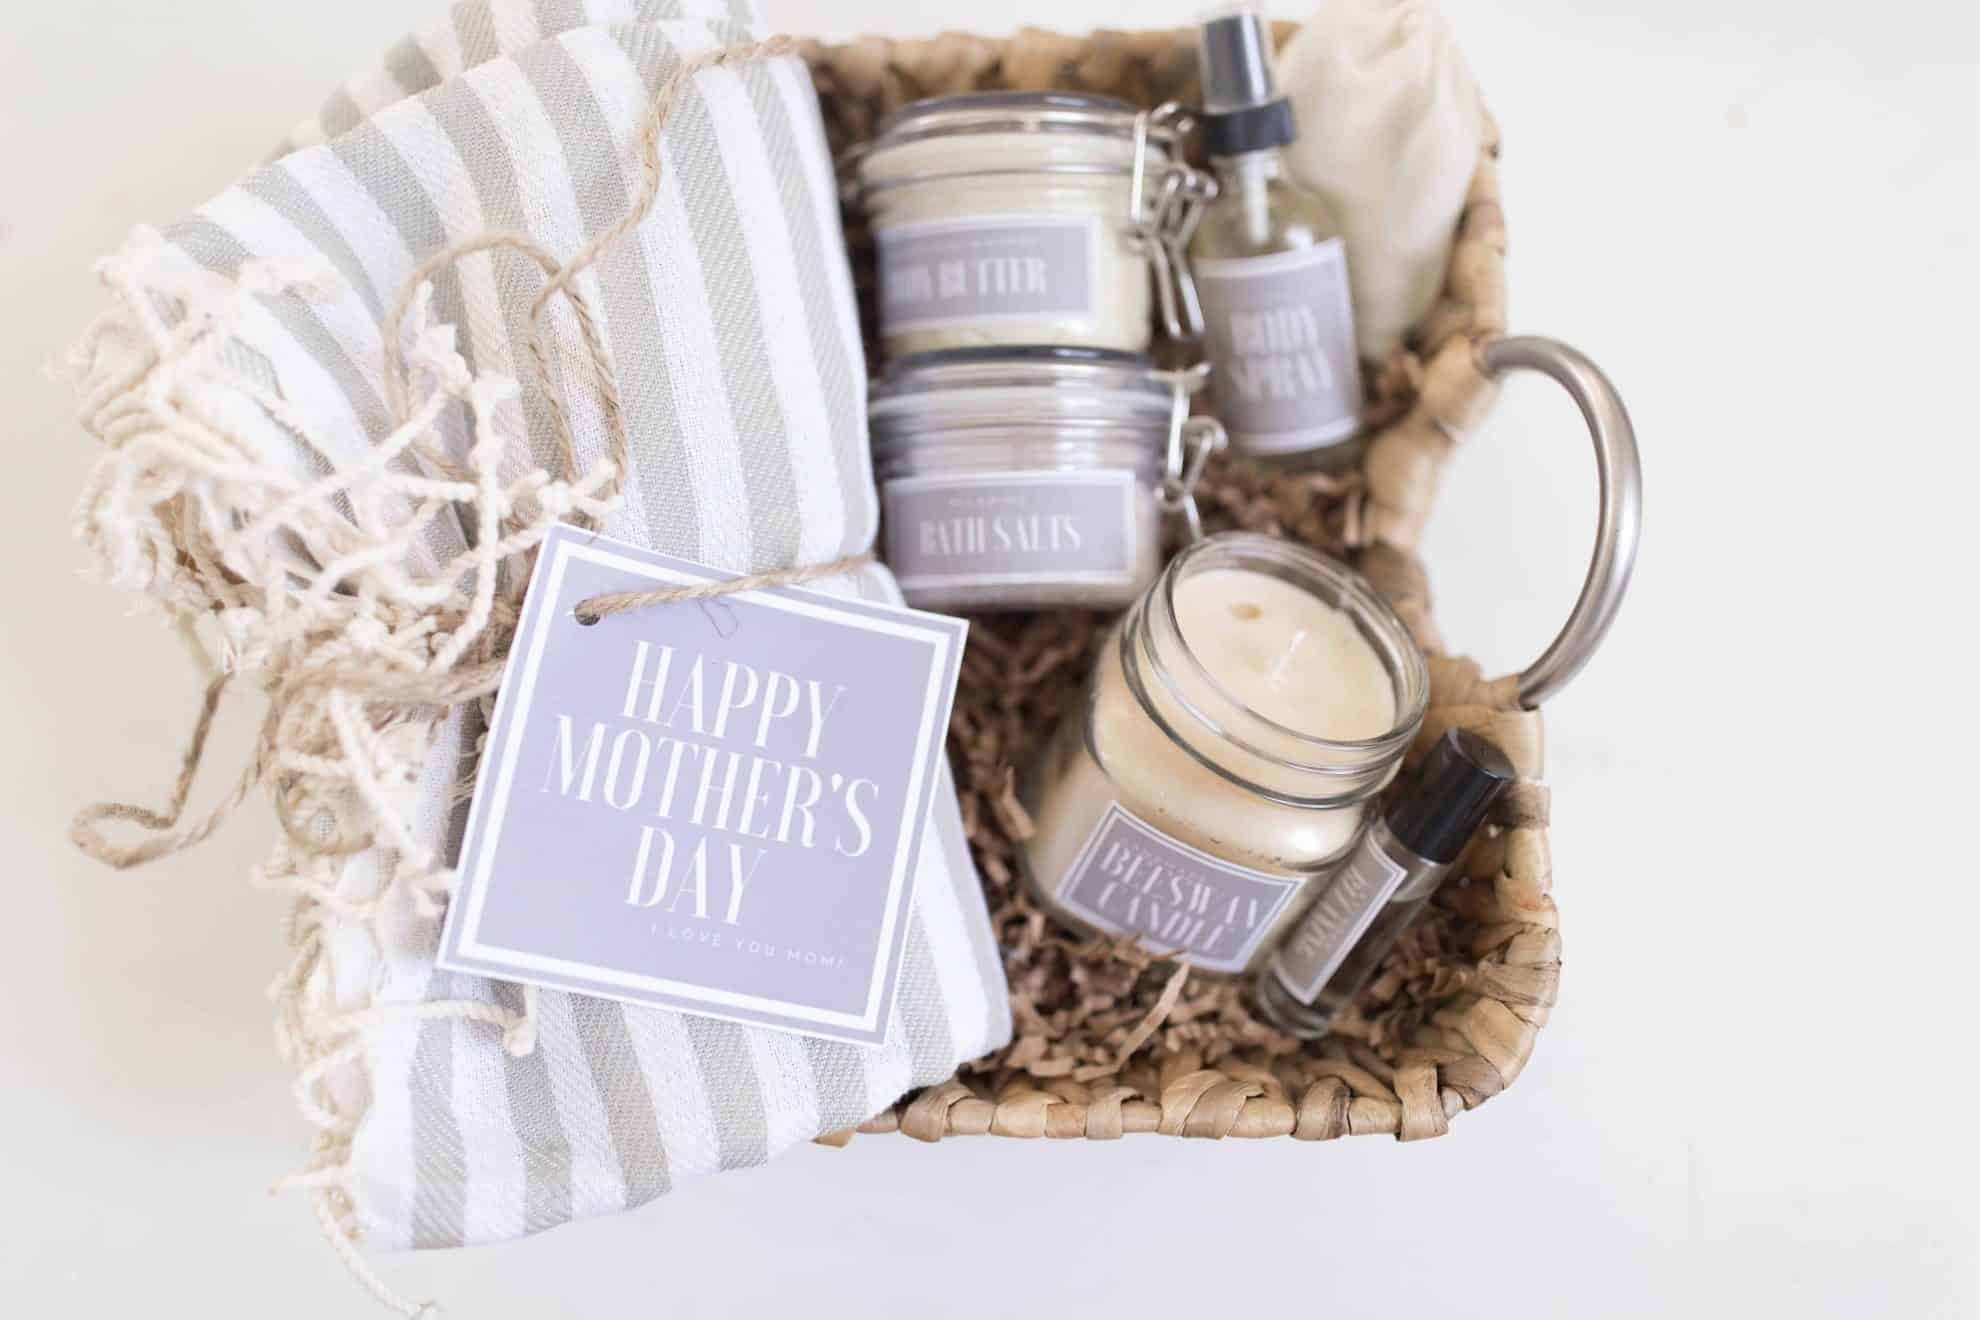 afa49da238bd1 Handmade Mother's Day Gift Baskets with Free Printable Labels ...